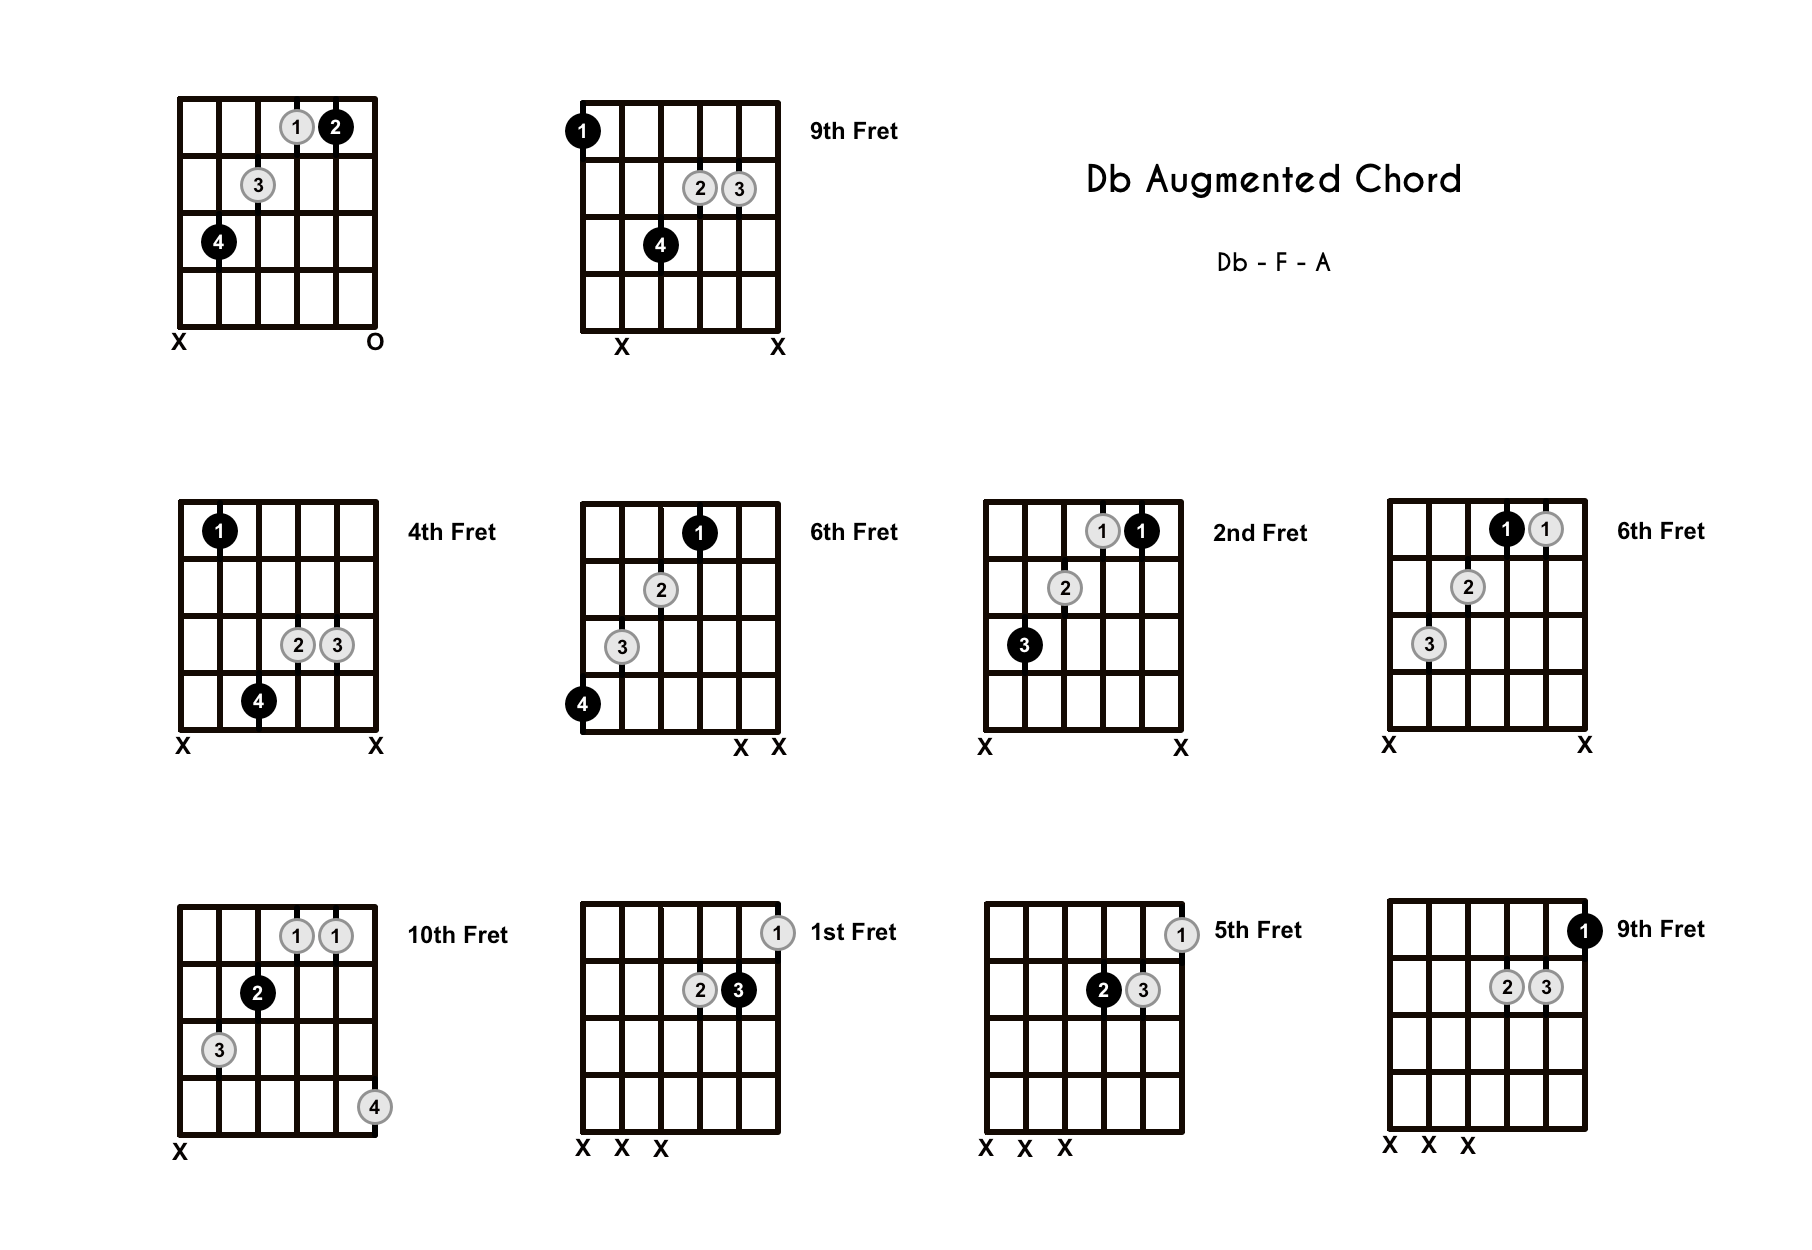 D Flat Augmented Chord on the Guitar (Db+) – Diagrams, Finger Positions, Theory